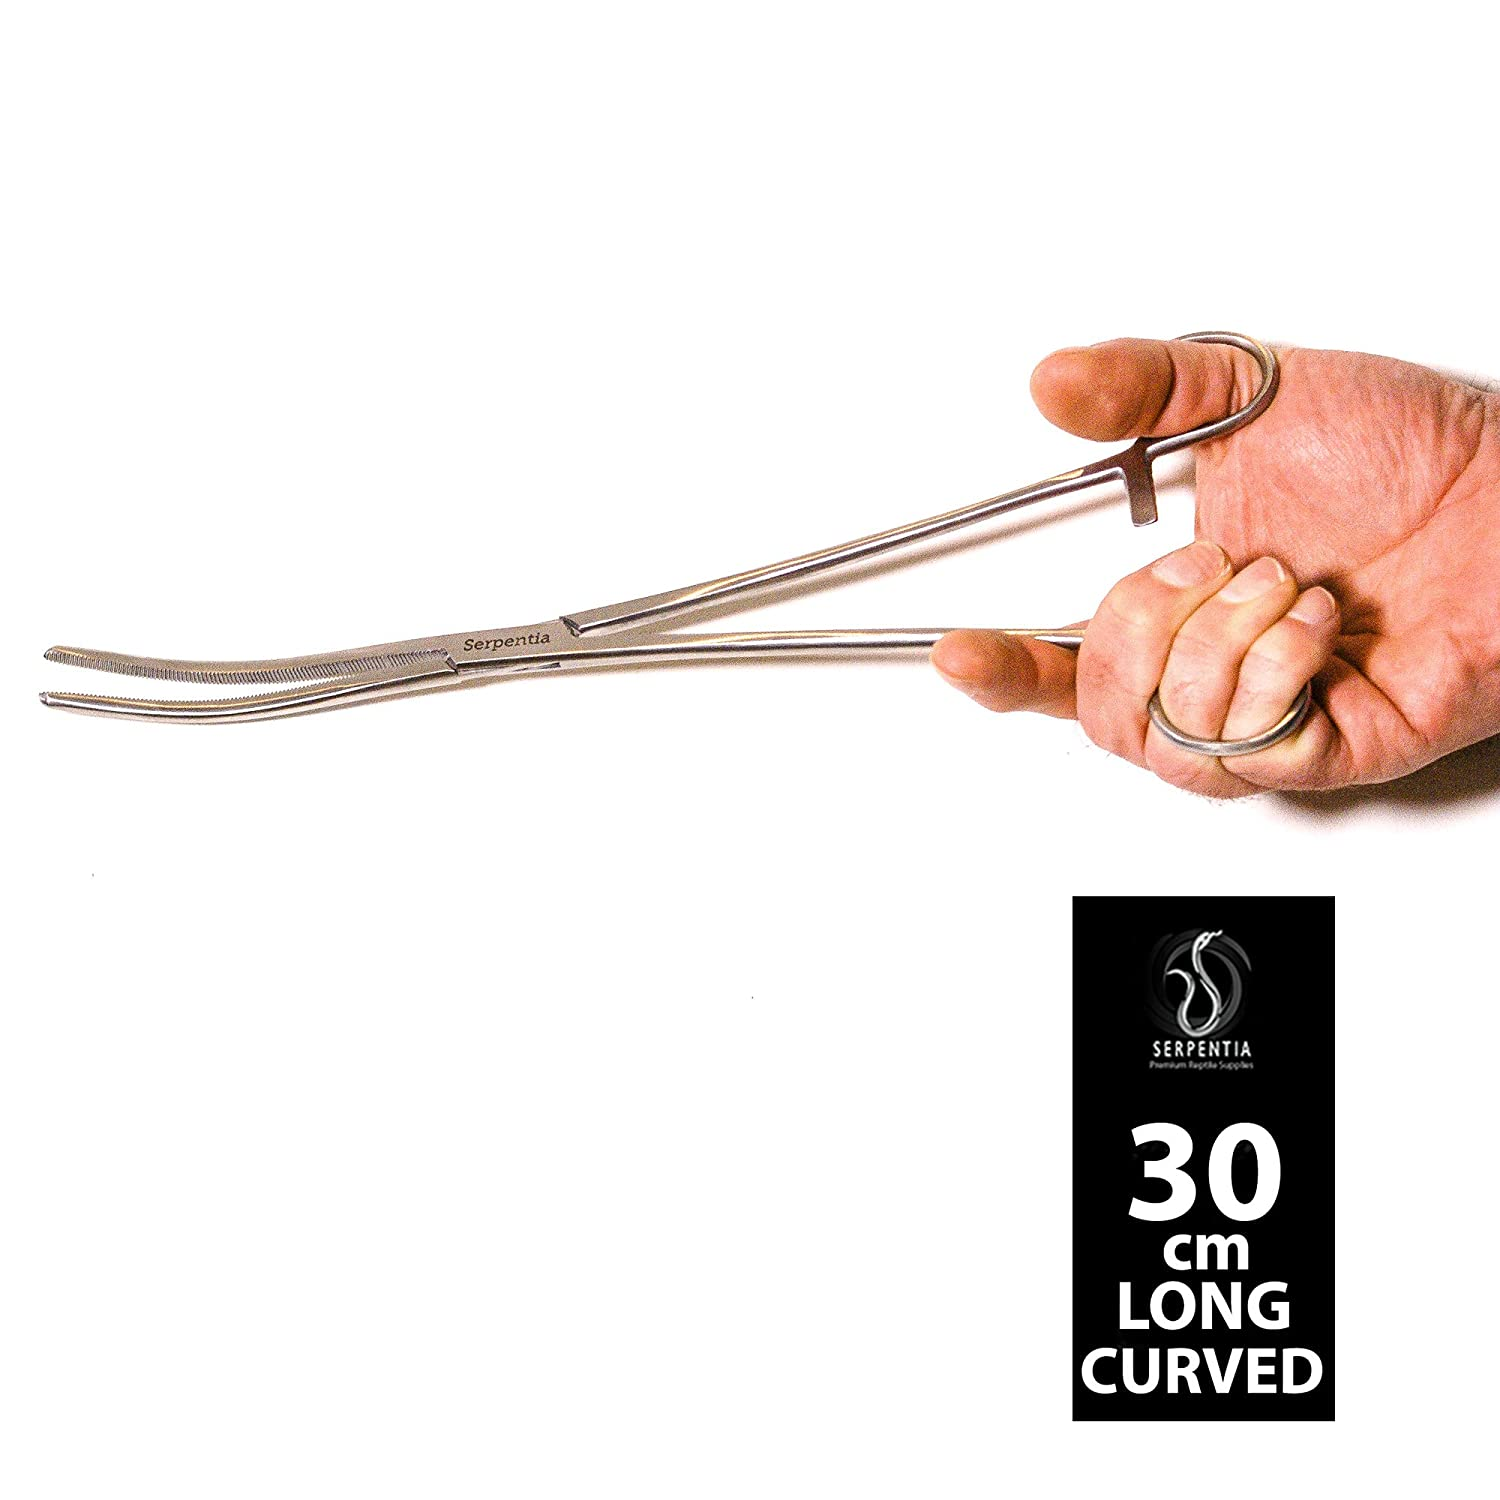 Serpentia Snake/Reptile Feeding Tongs (Hemostats) - 30cm Curved Tip